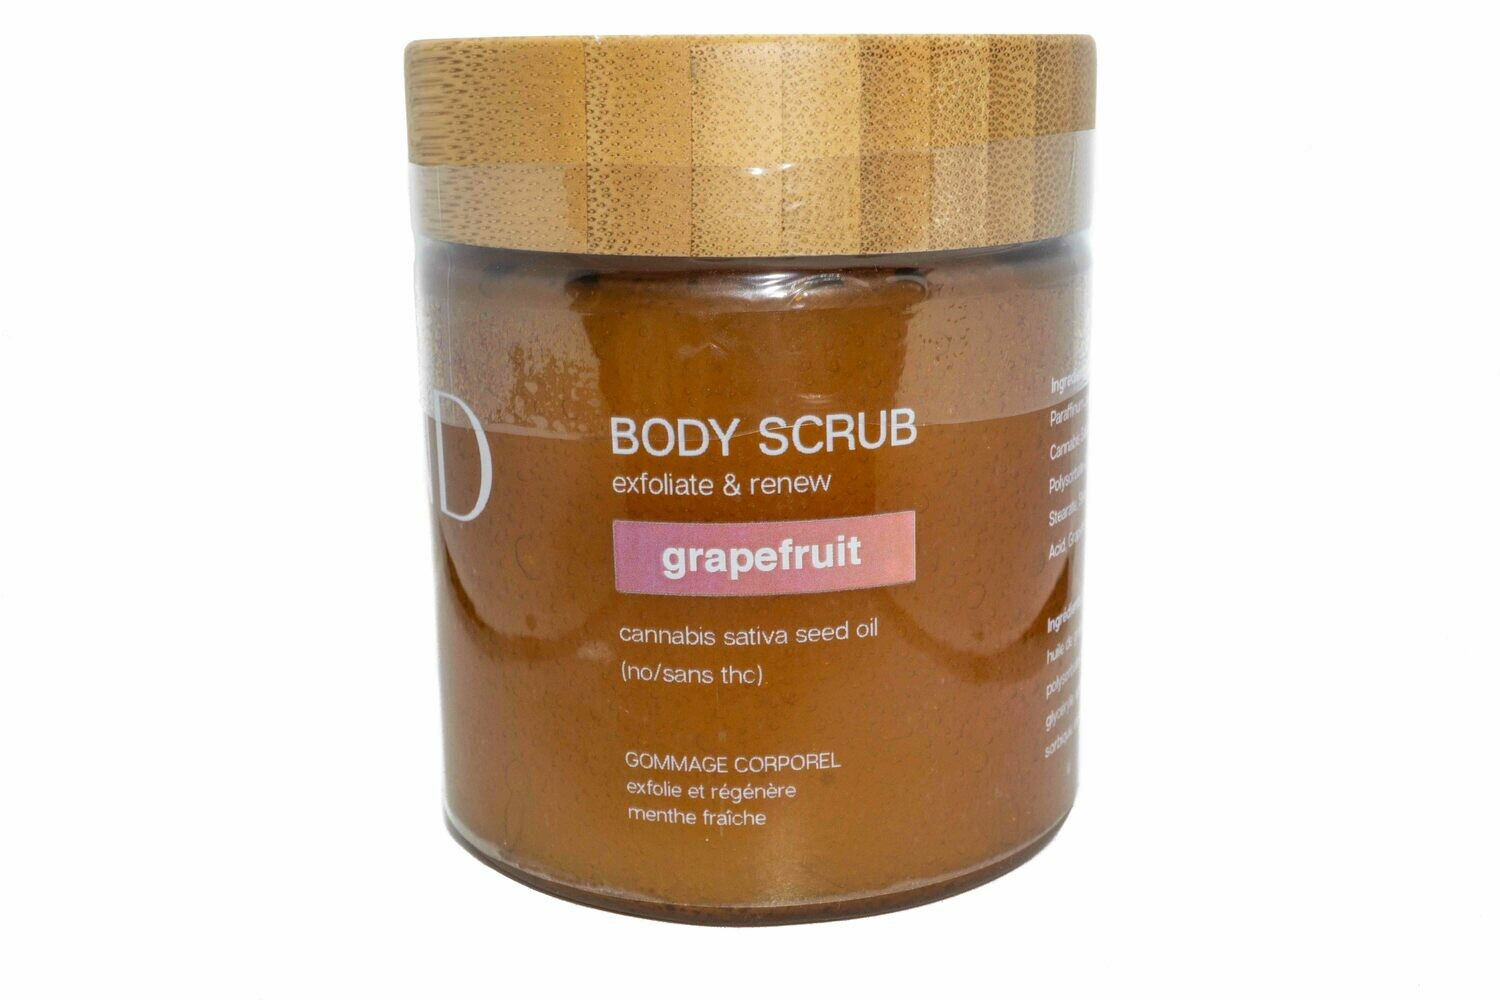 Scented Body Scrub by SToND Naturals